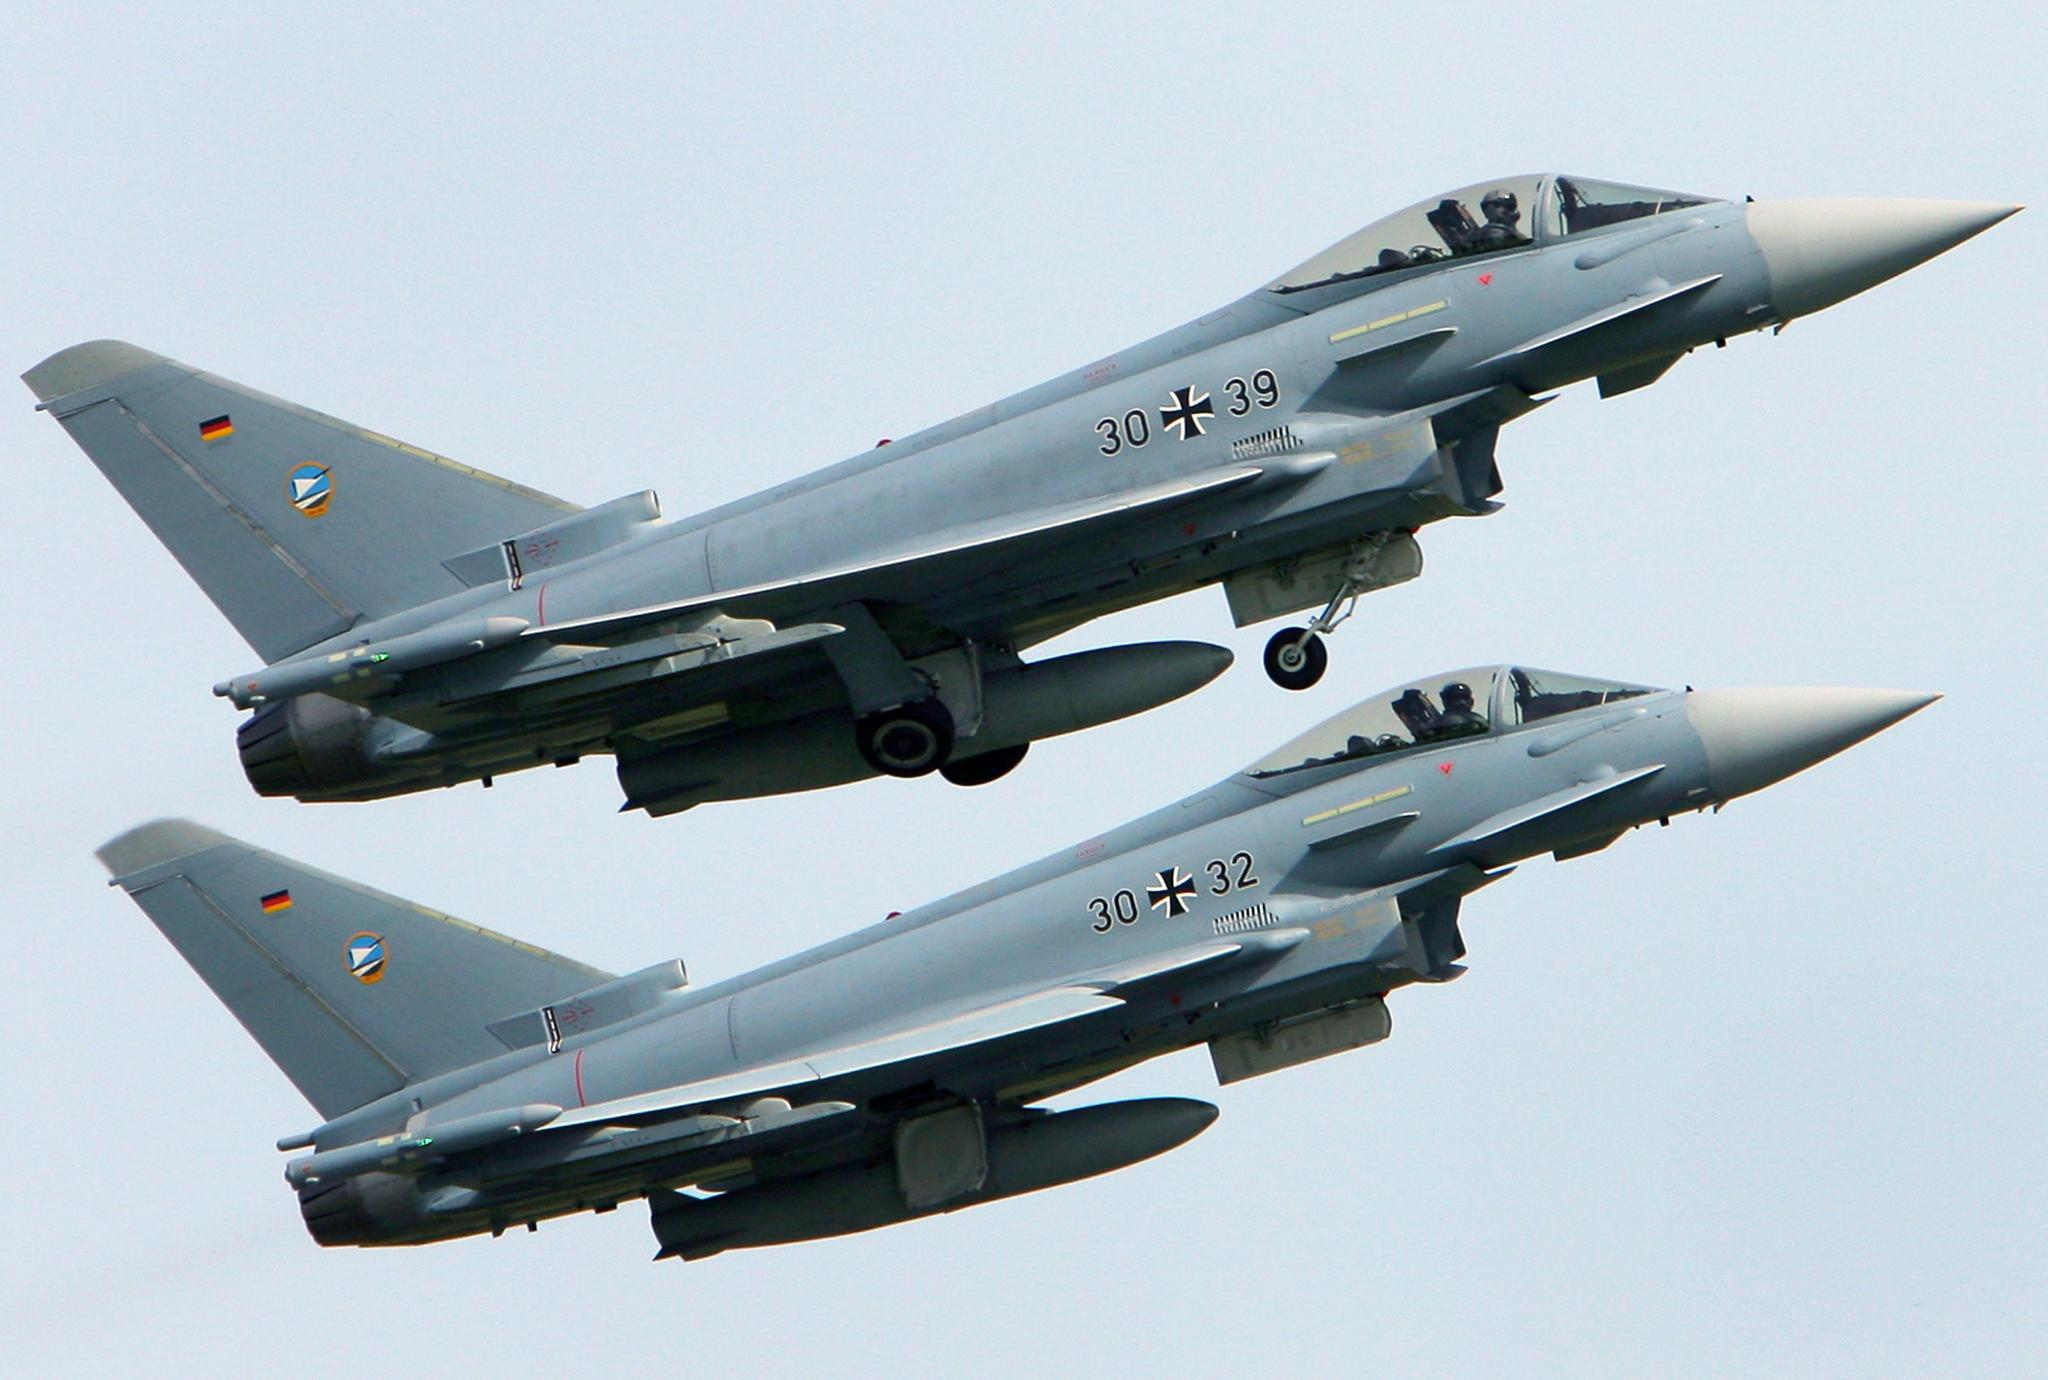 Germany plane crash: Pilot killed after two fighter jets